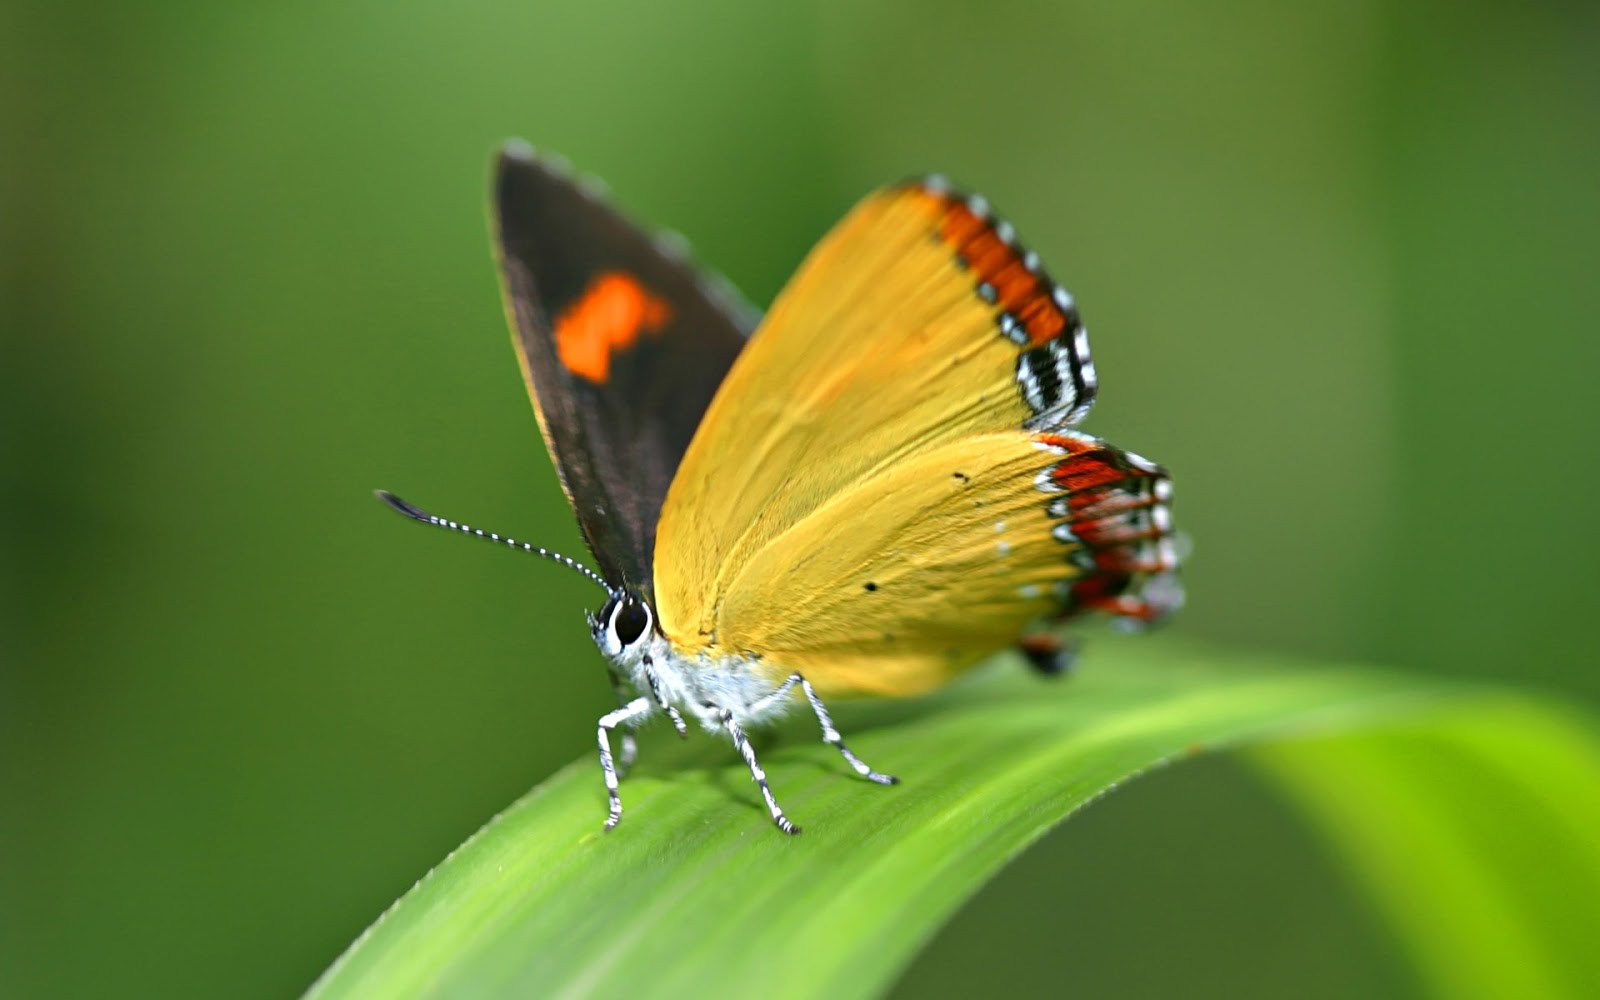 hd butterfly wallpaper with - photo #8